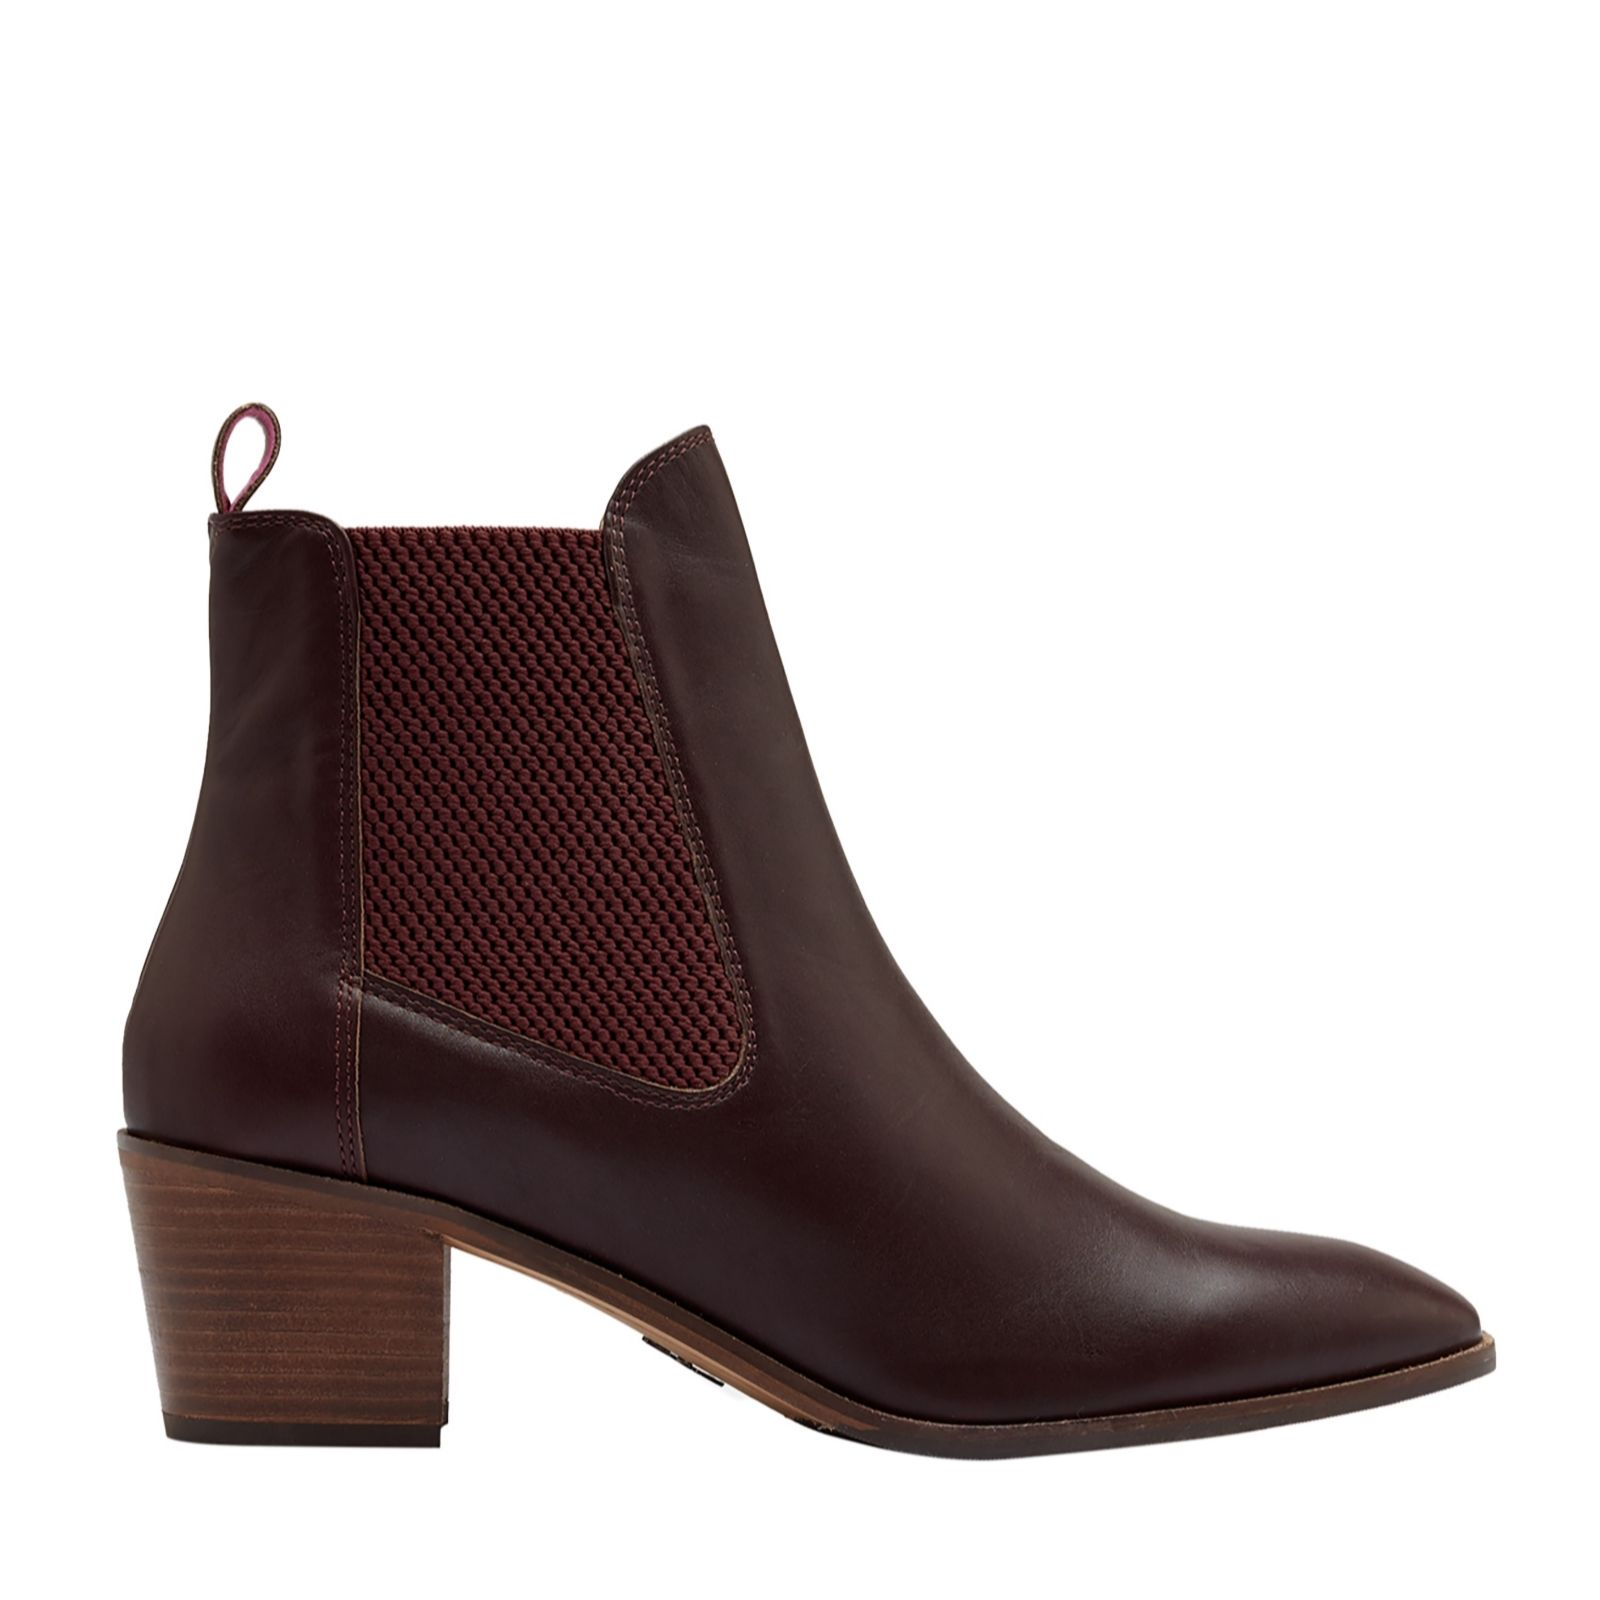 official supplier hot product really comfortable Joules Hartford Heeled Ankle Boot - QVC UK